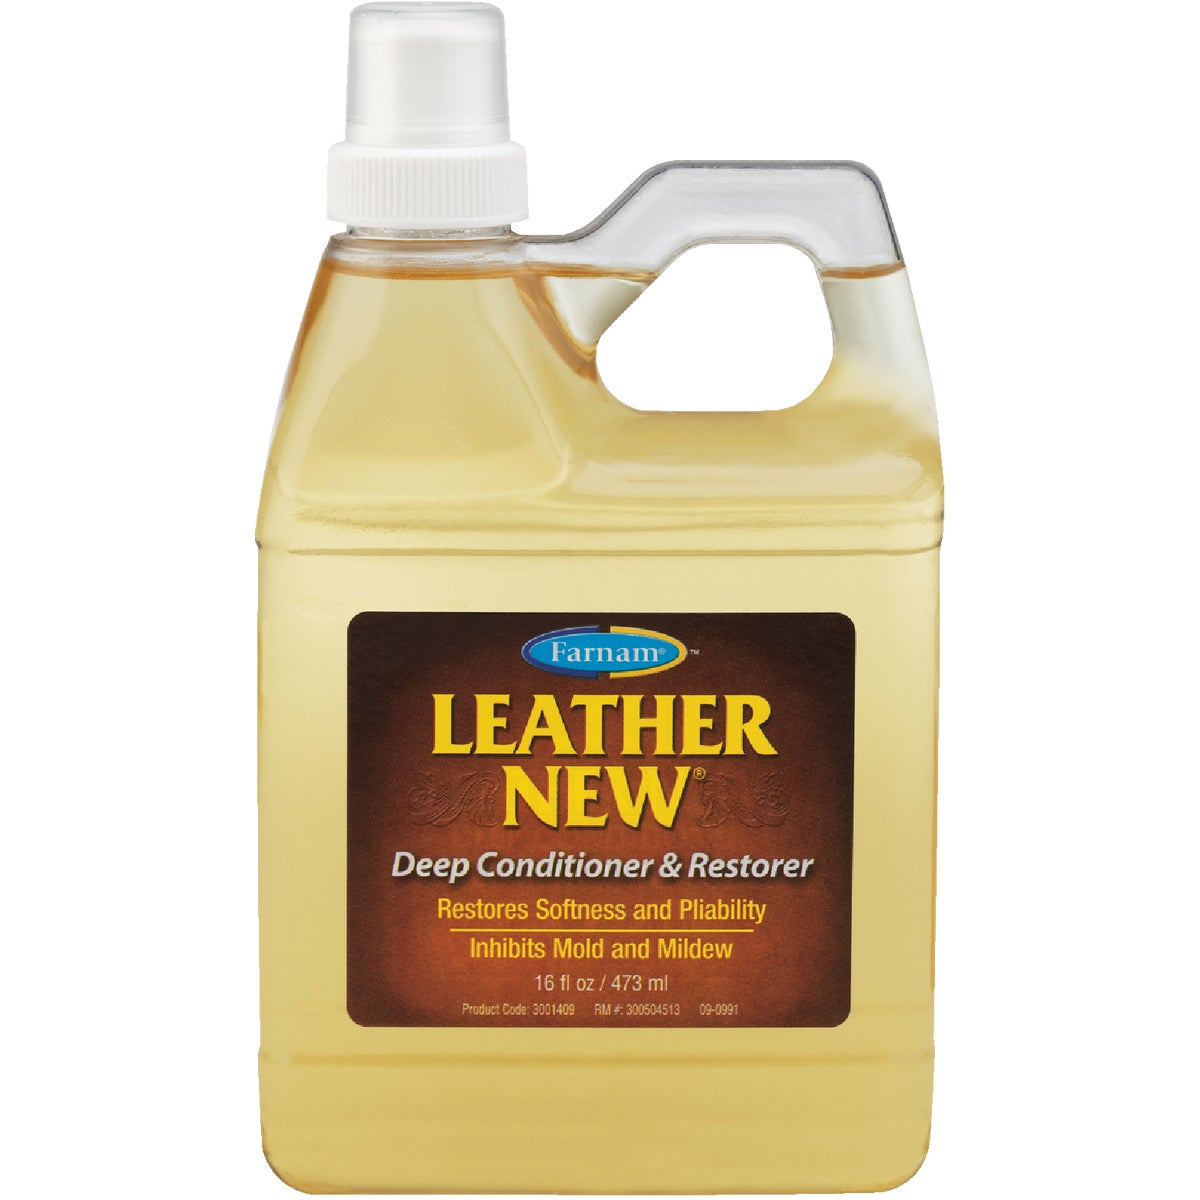 16OZ DEEP CD LEATHER NEW - 3001409 by Farnam Central Life